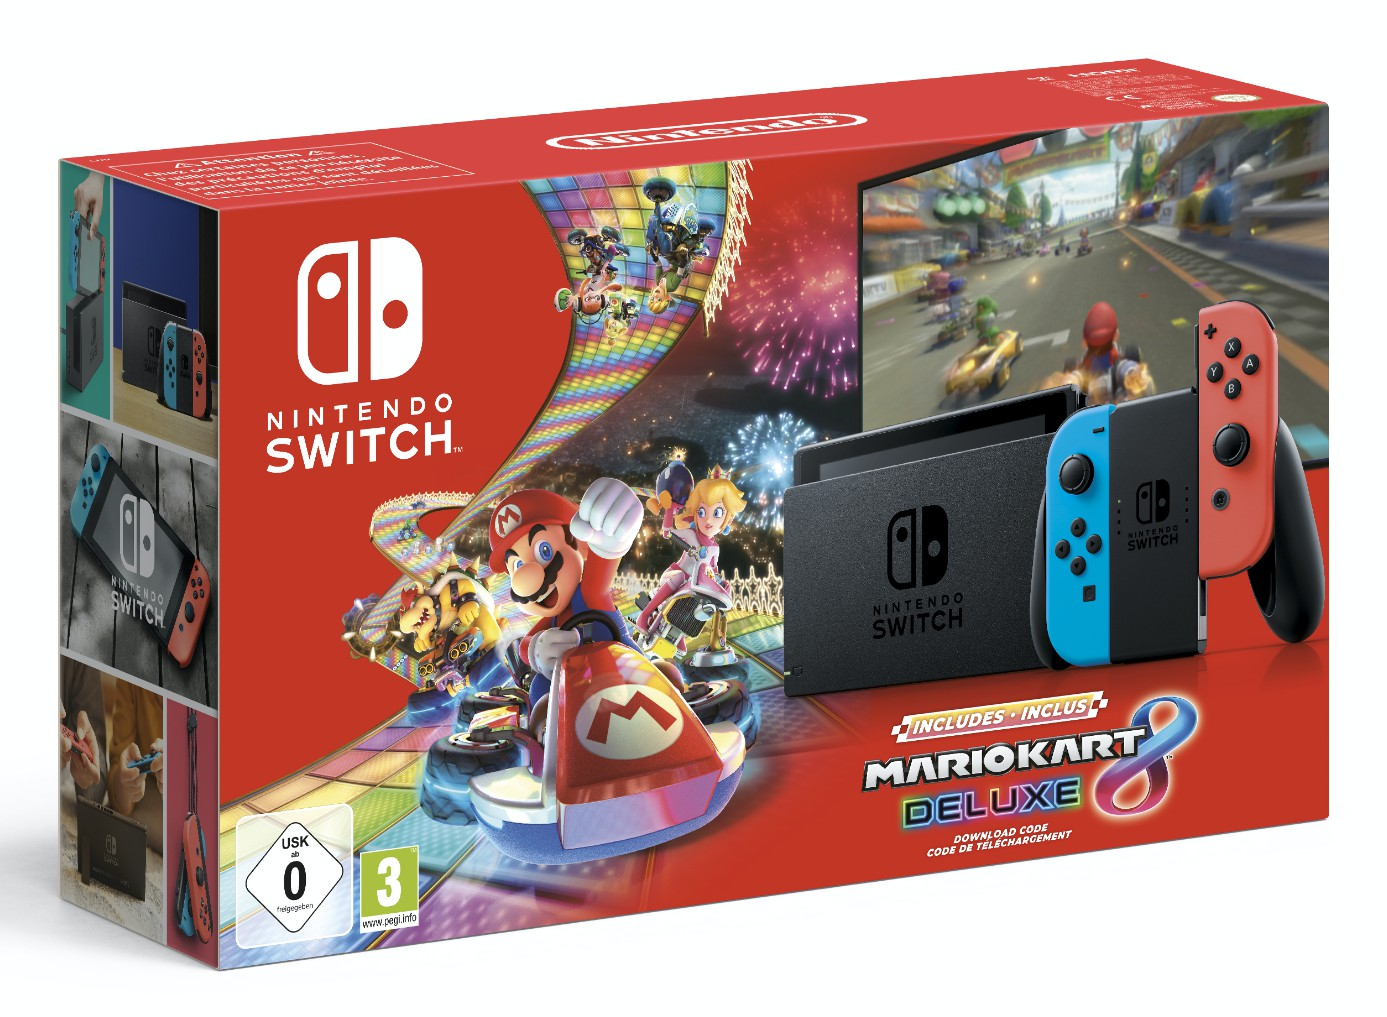 Nintendo Switch Mario Kart Deluxe 8 Bundle With Neon Red And Neon Blue Joy Con V 1 1